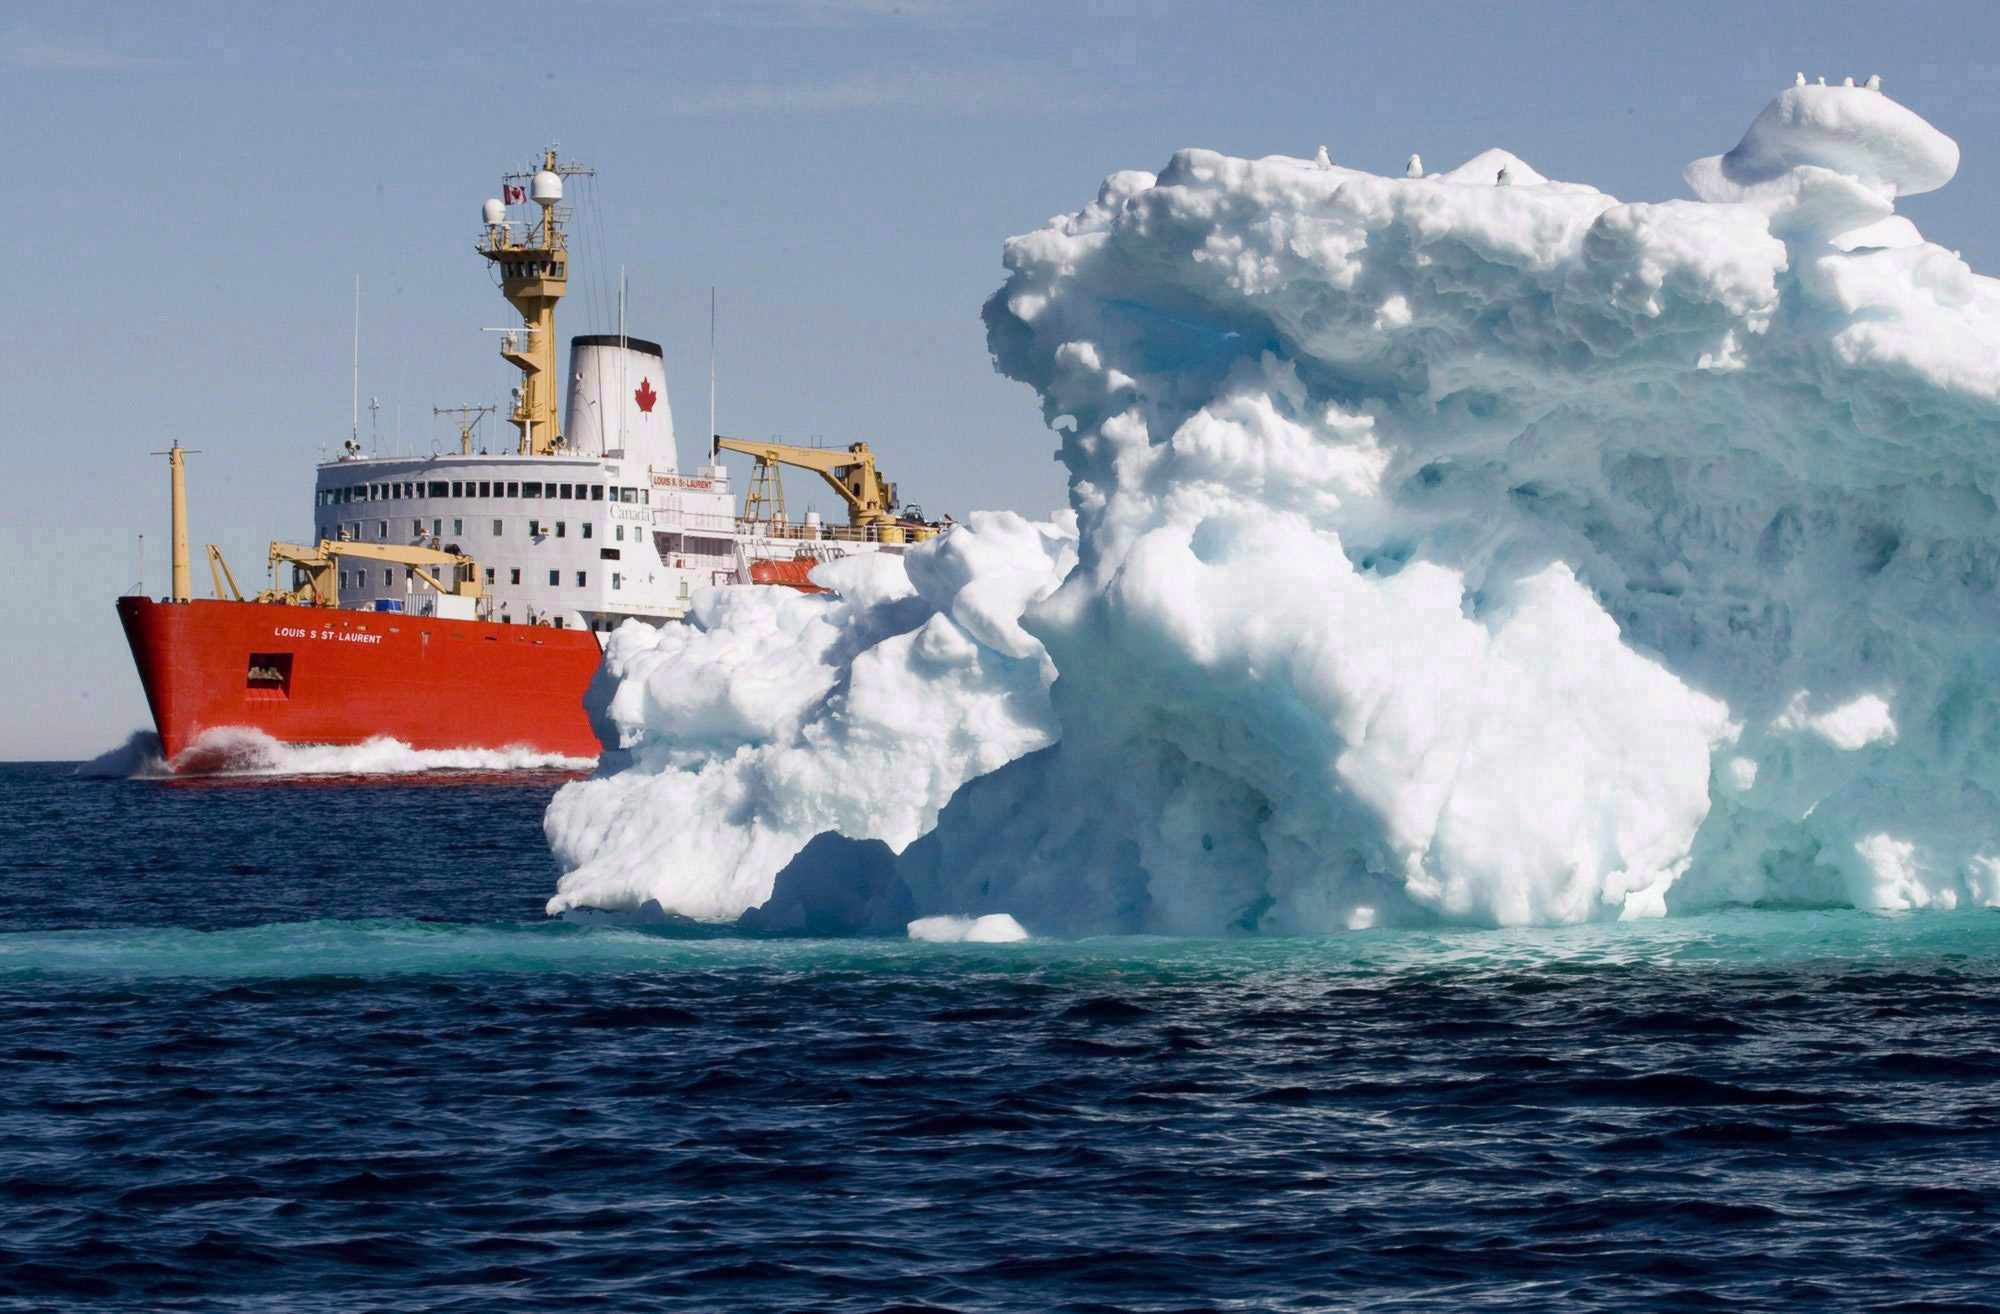 As ice recedes, the Arctic isn't prepared for more shipping traffic